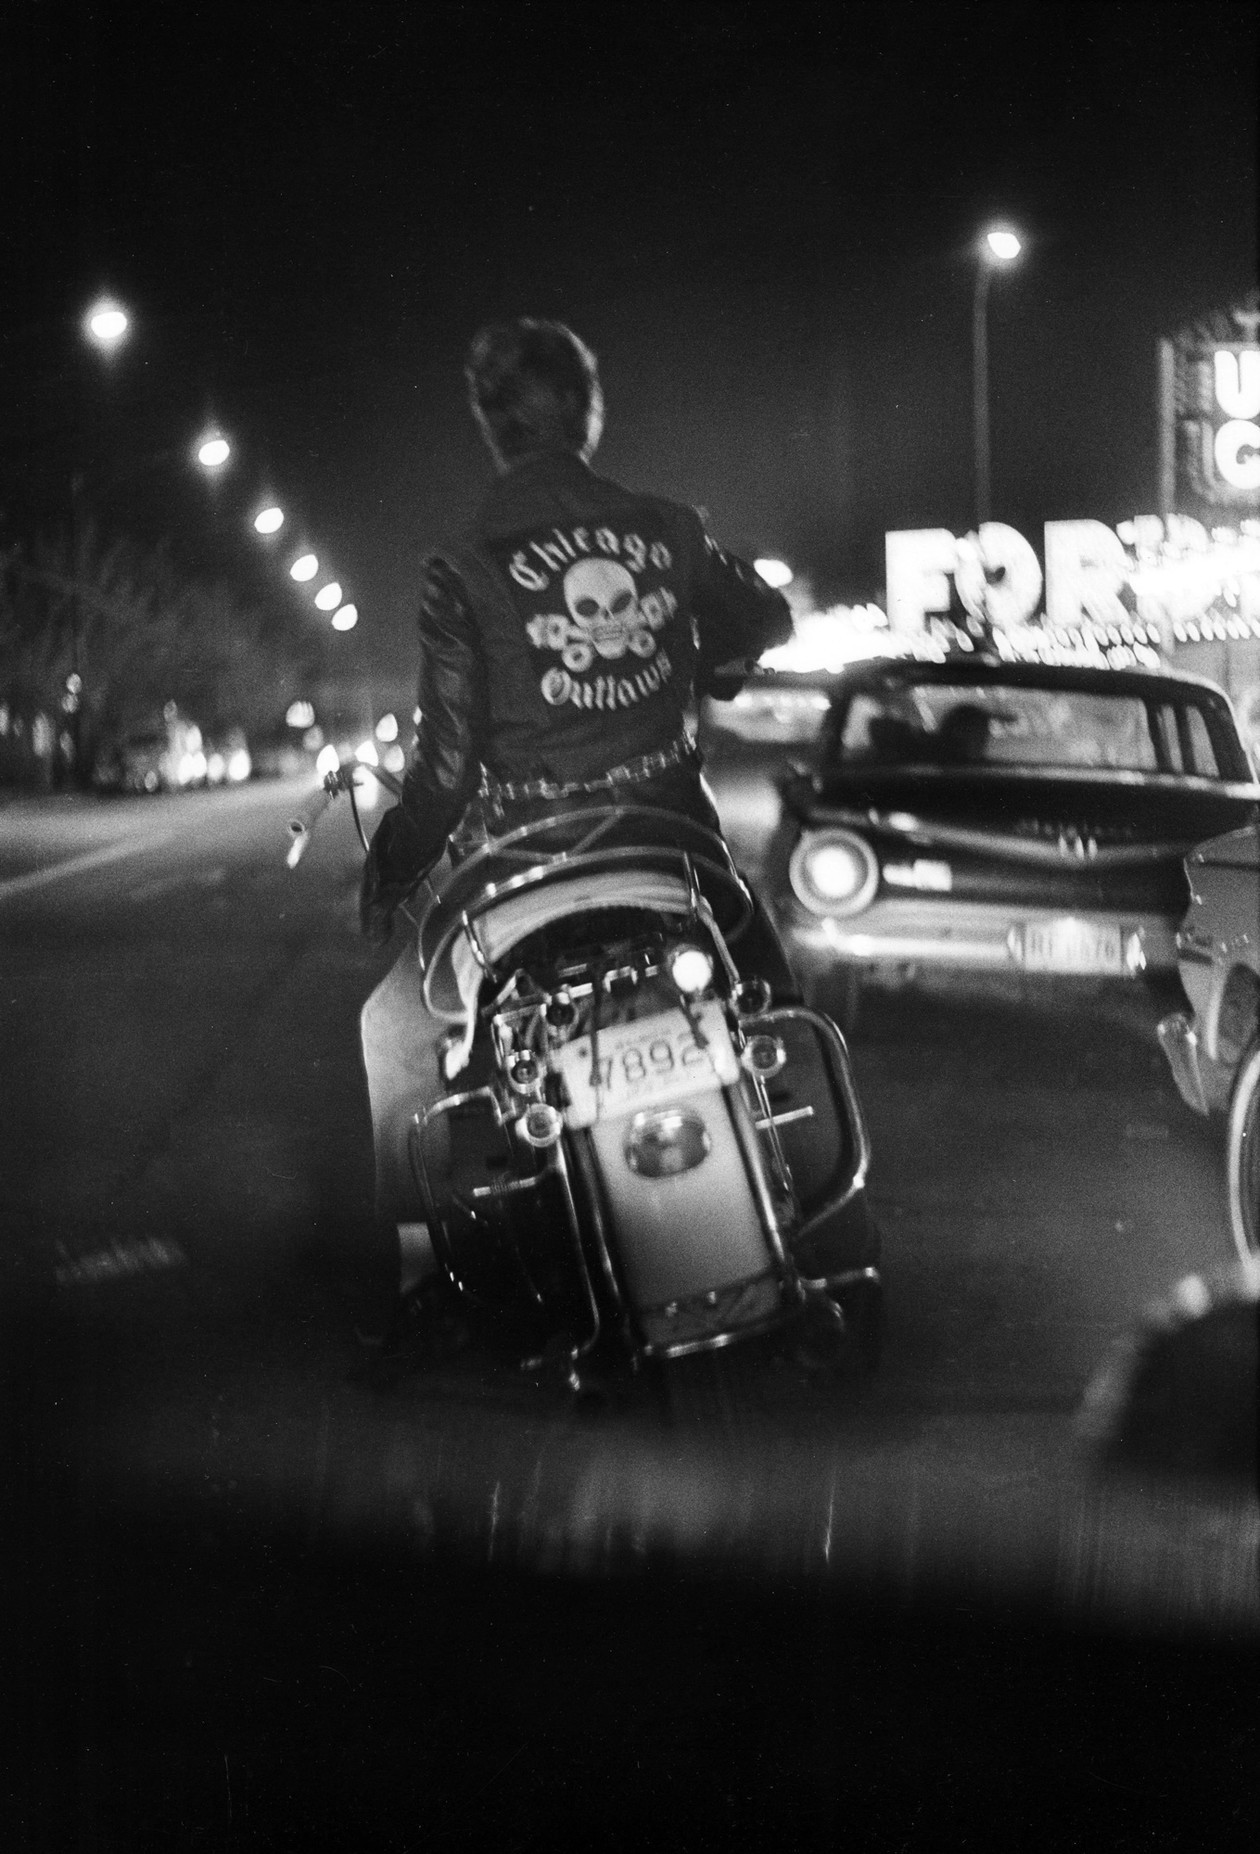 Benny, Division and Grand, Chicago (1963-1967) by Danny Lyon